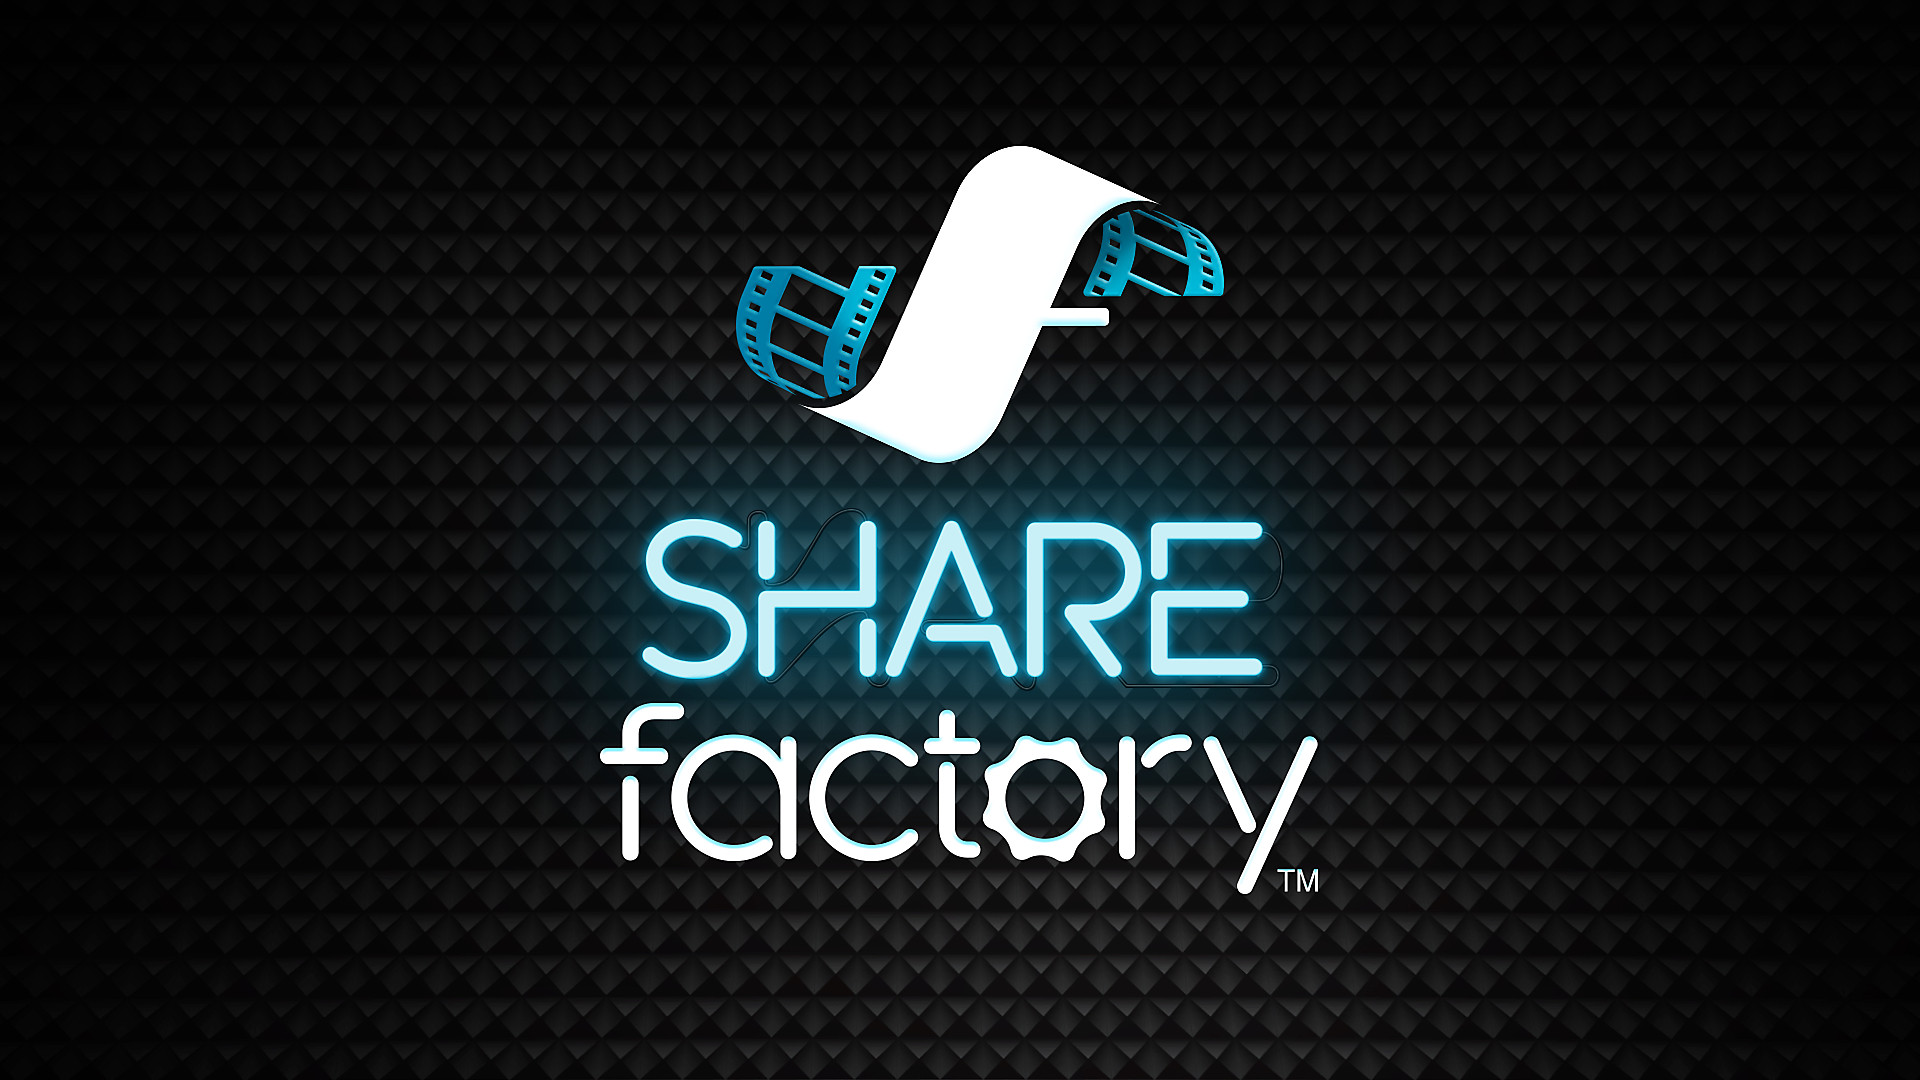 Fortnite SHAREfactory